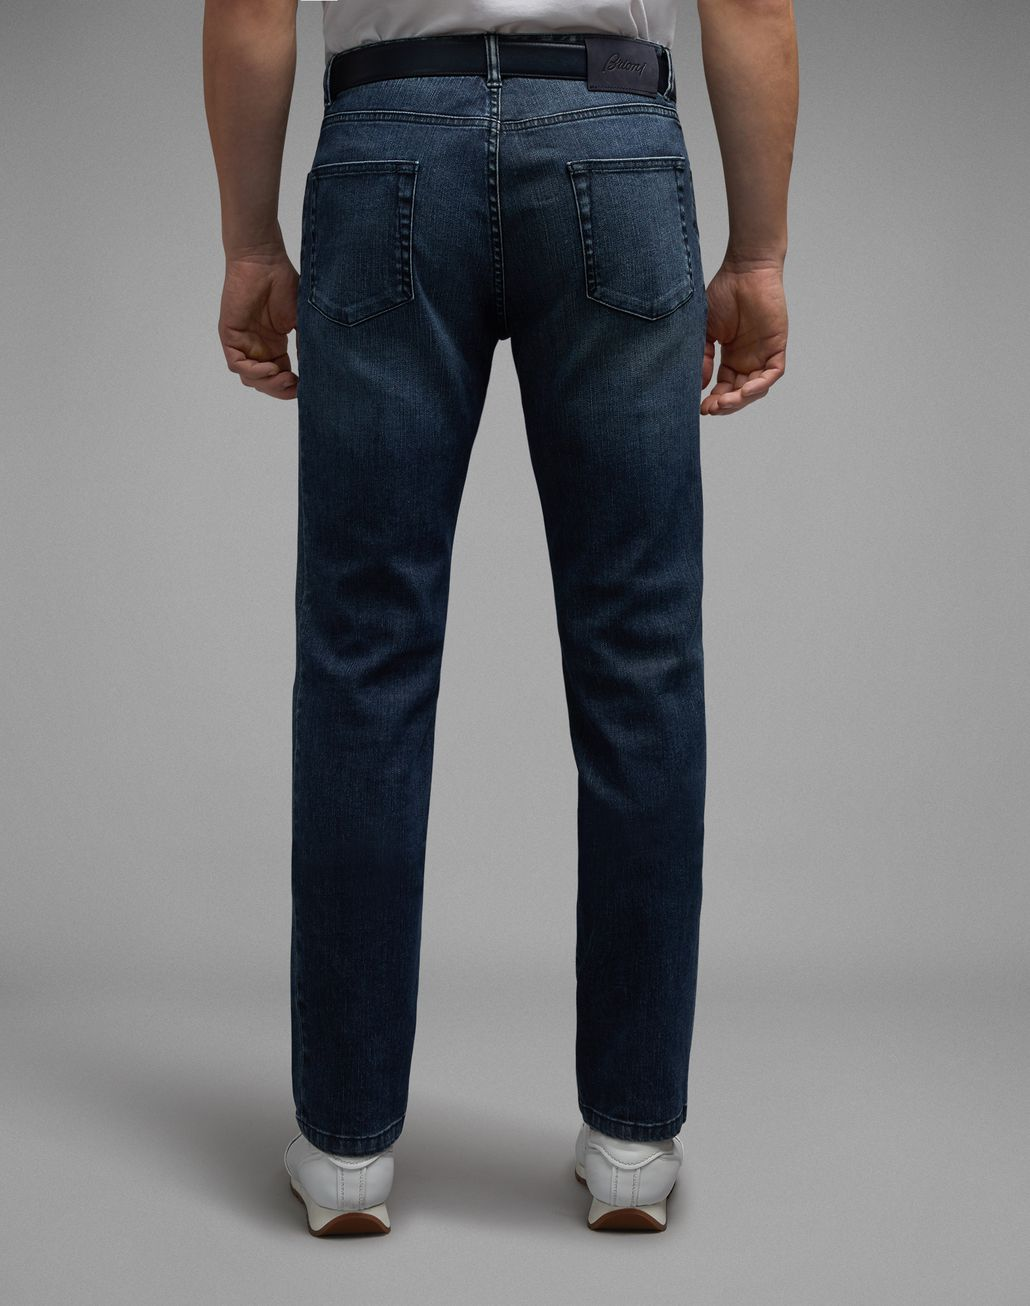 BRIONI Jeans Meribel Blu Navy Denim Uomo d